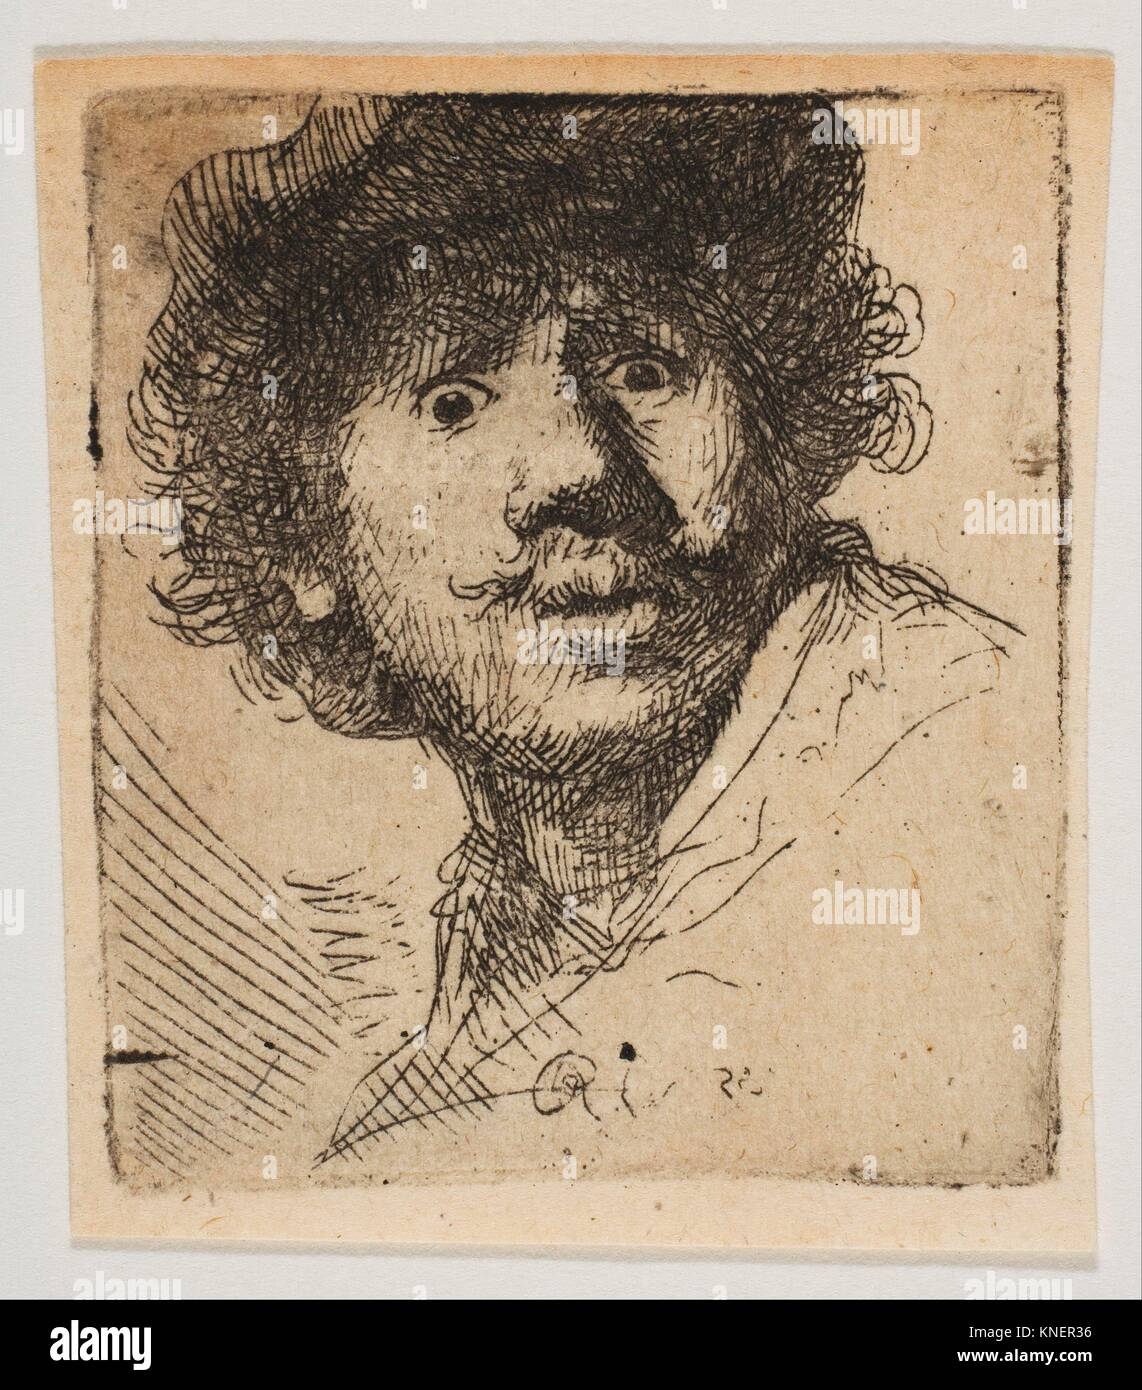 Rembrandt in a Cap, Open Mouthed and Staring: Bust in Outline (copy). Artist: After Rembrandt (Rembrandt van Rijn) - Stock Image